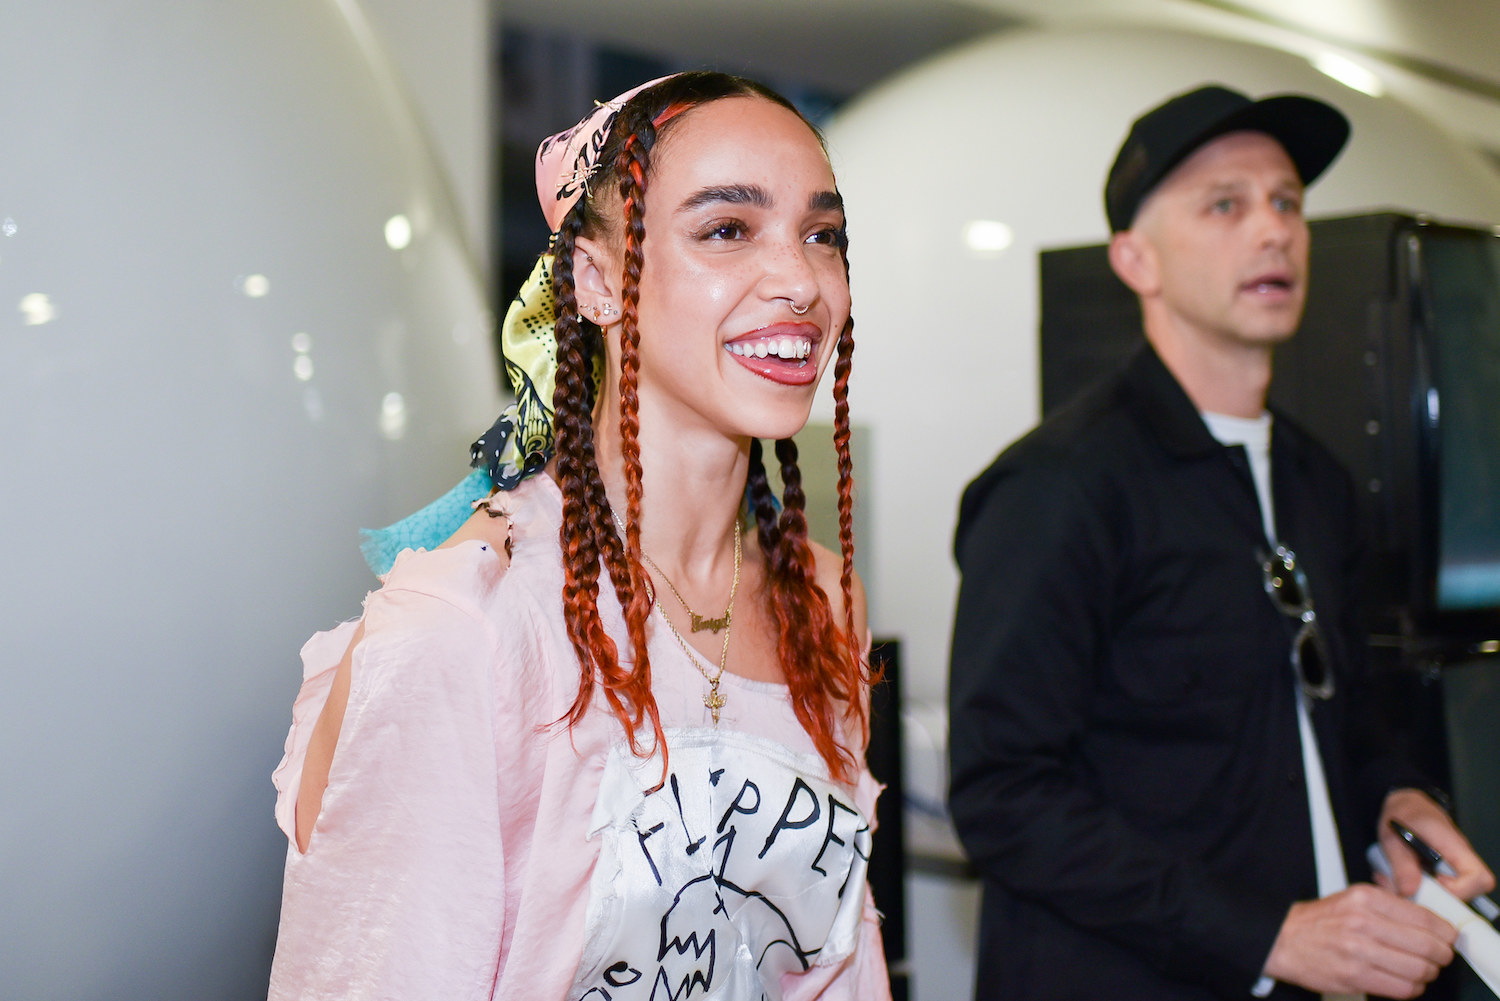 British singer and songwriter FKA Twigs smiles at an event at Dover Street Market during London Fashion Week